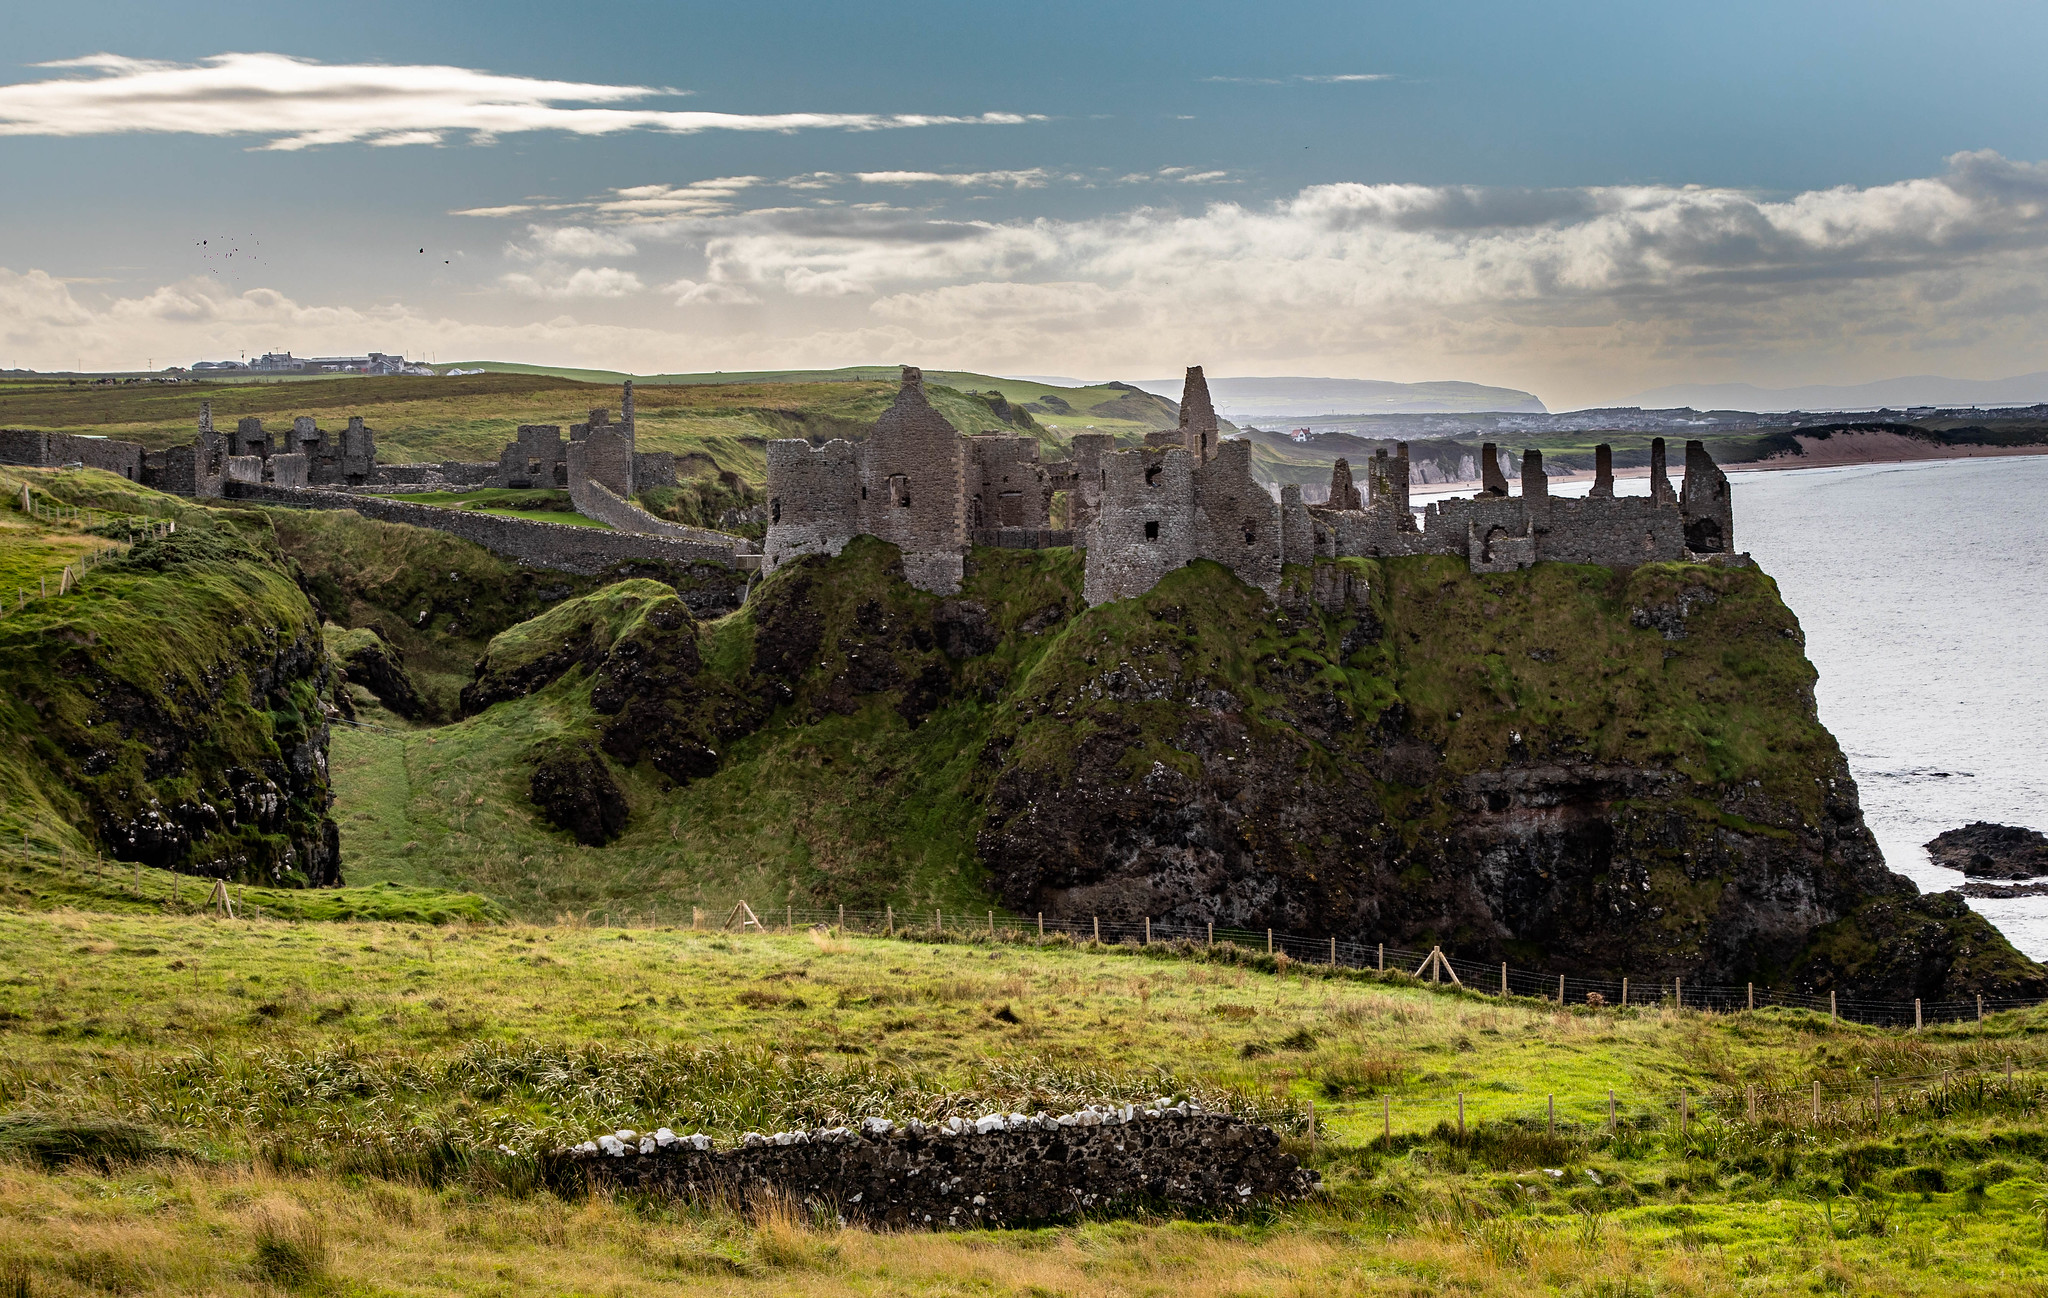 Dunluce Castle in County Antrim